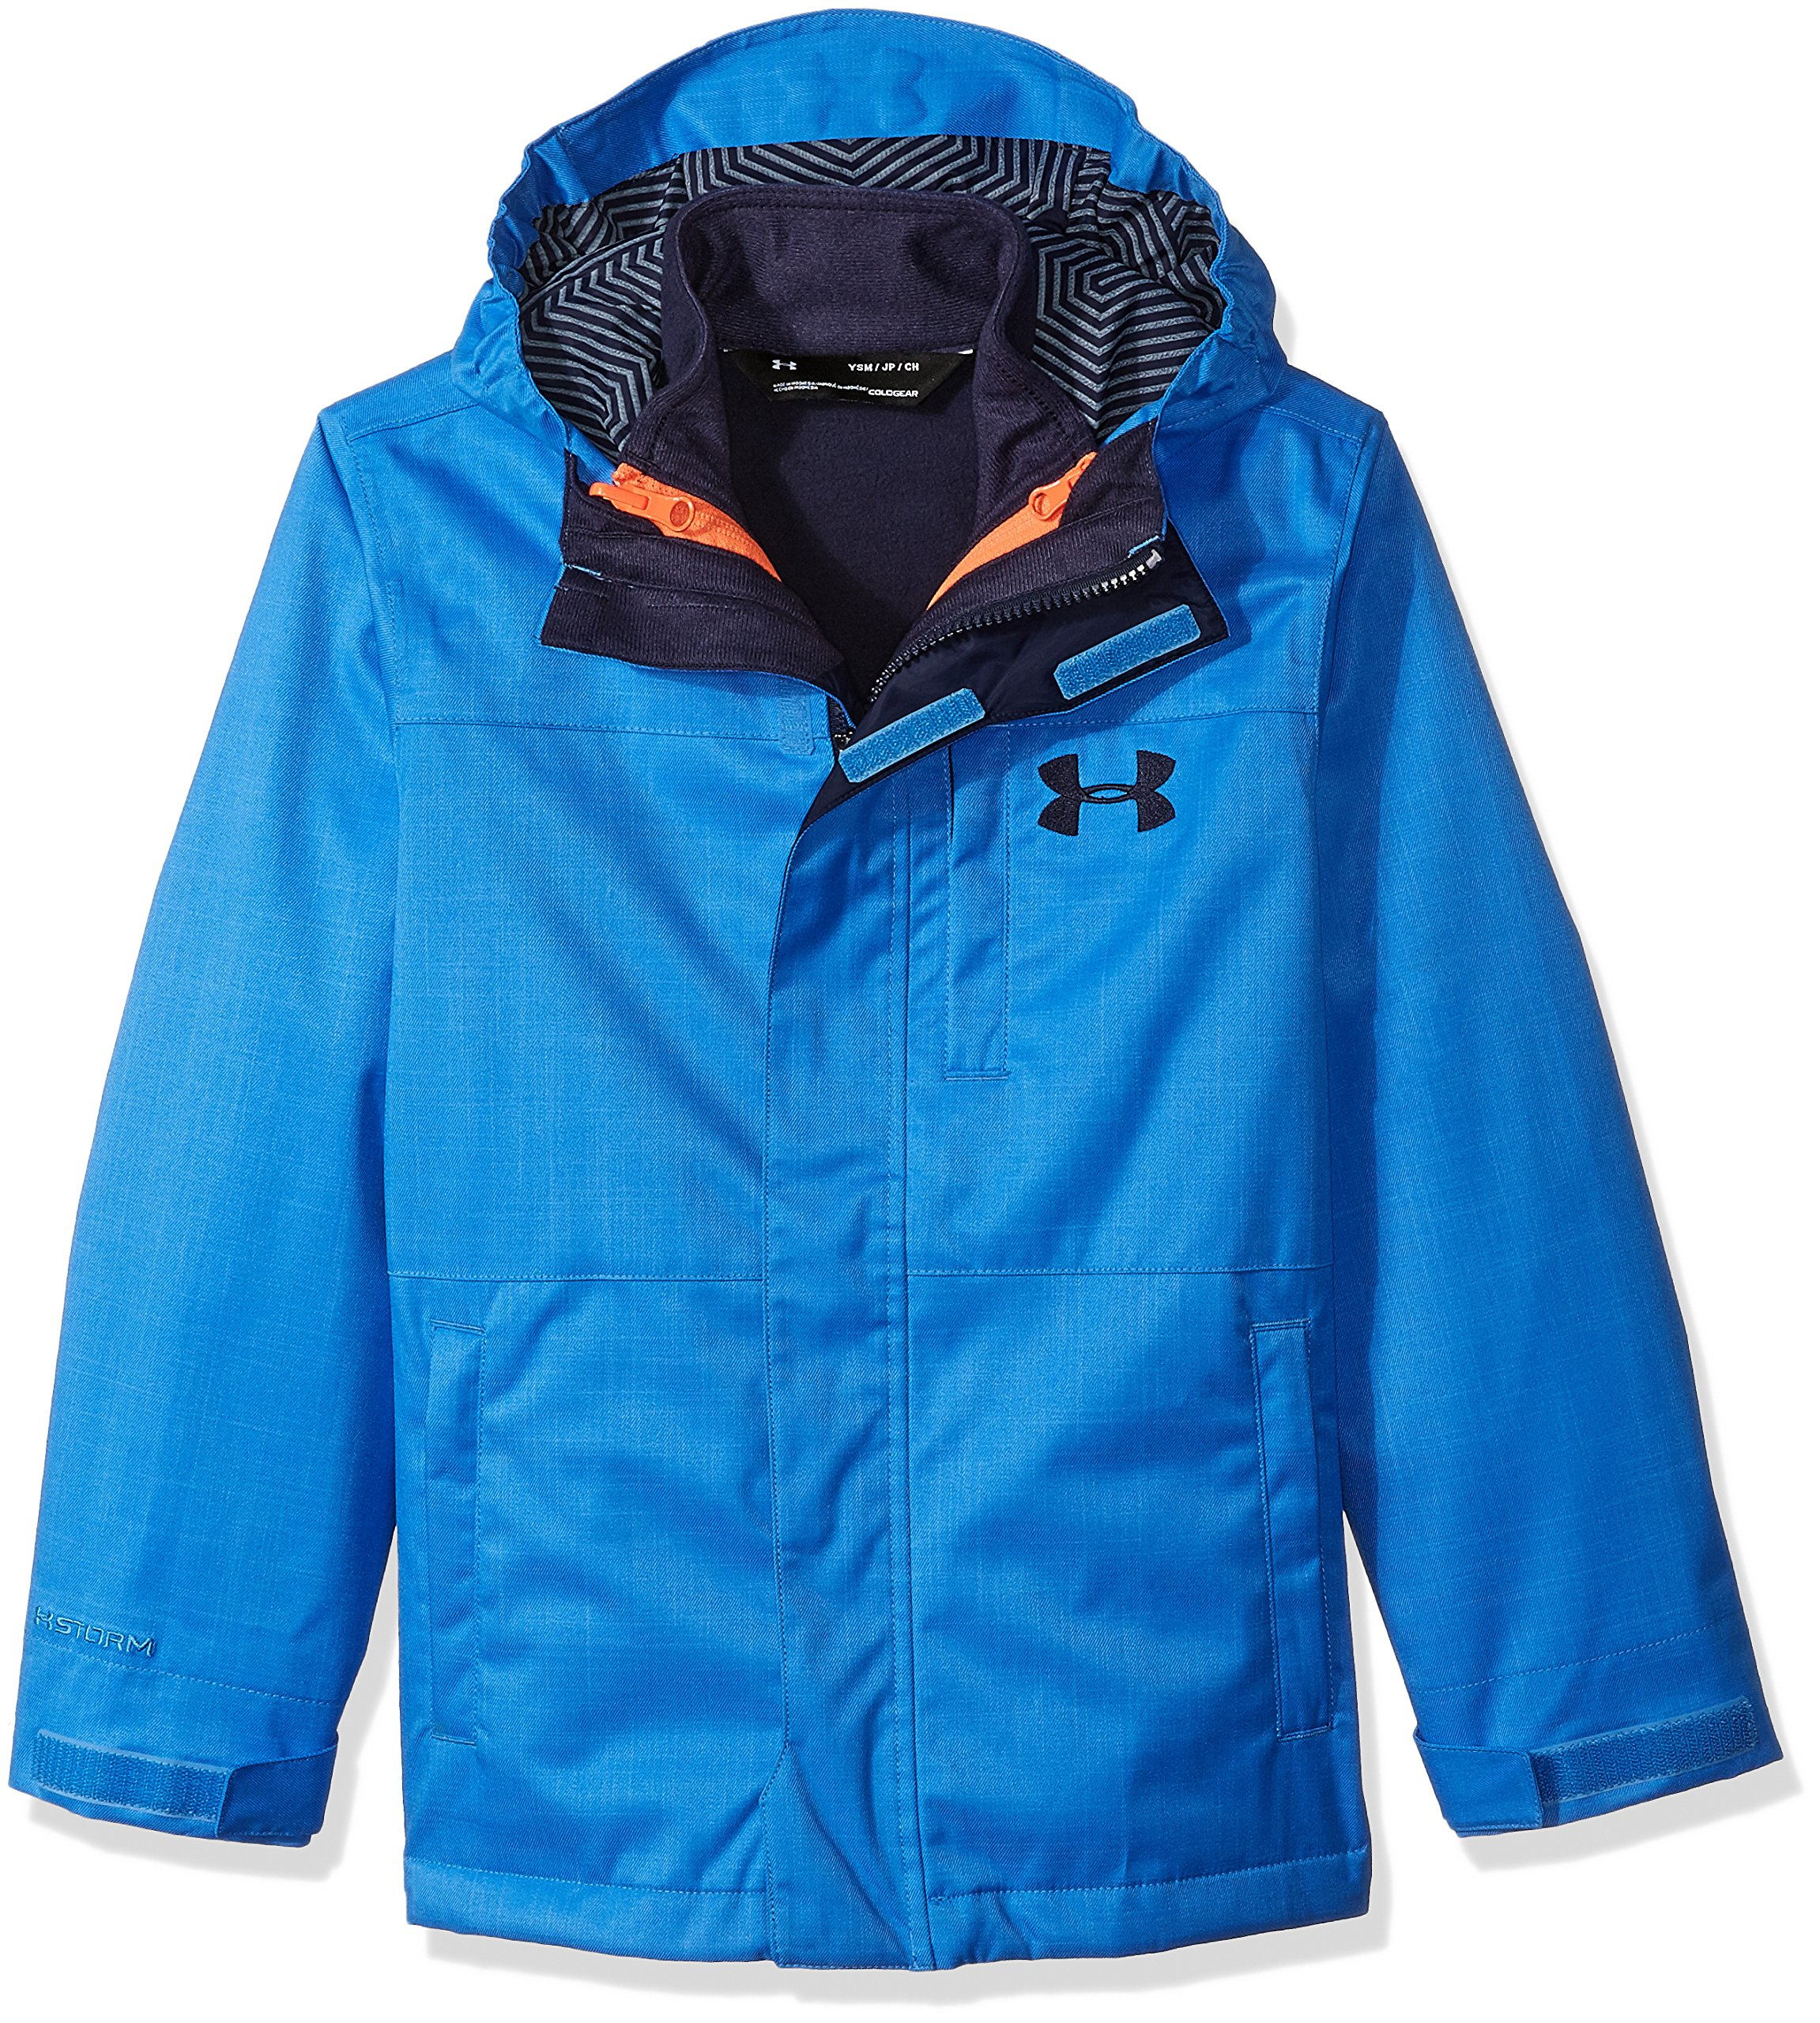 Under Armour Boys' Storm Wildwood 3-in-1 Jacket, Mako Blue/Midnight Navy, Youth Large by Under Armour